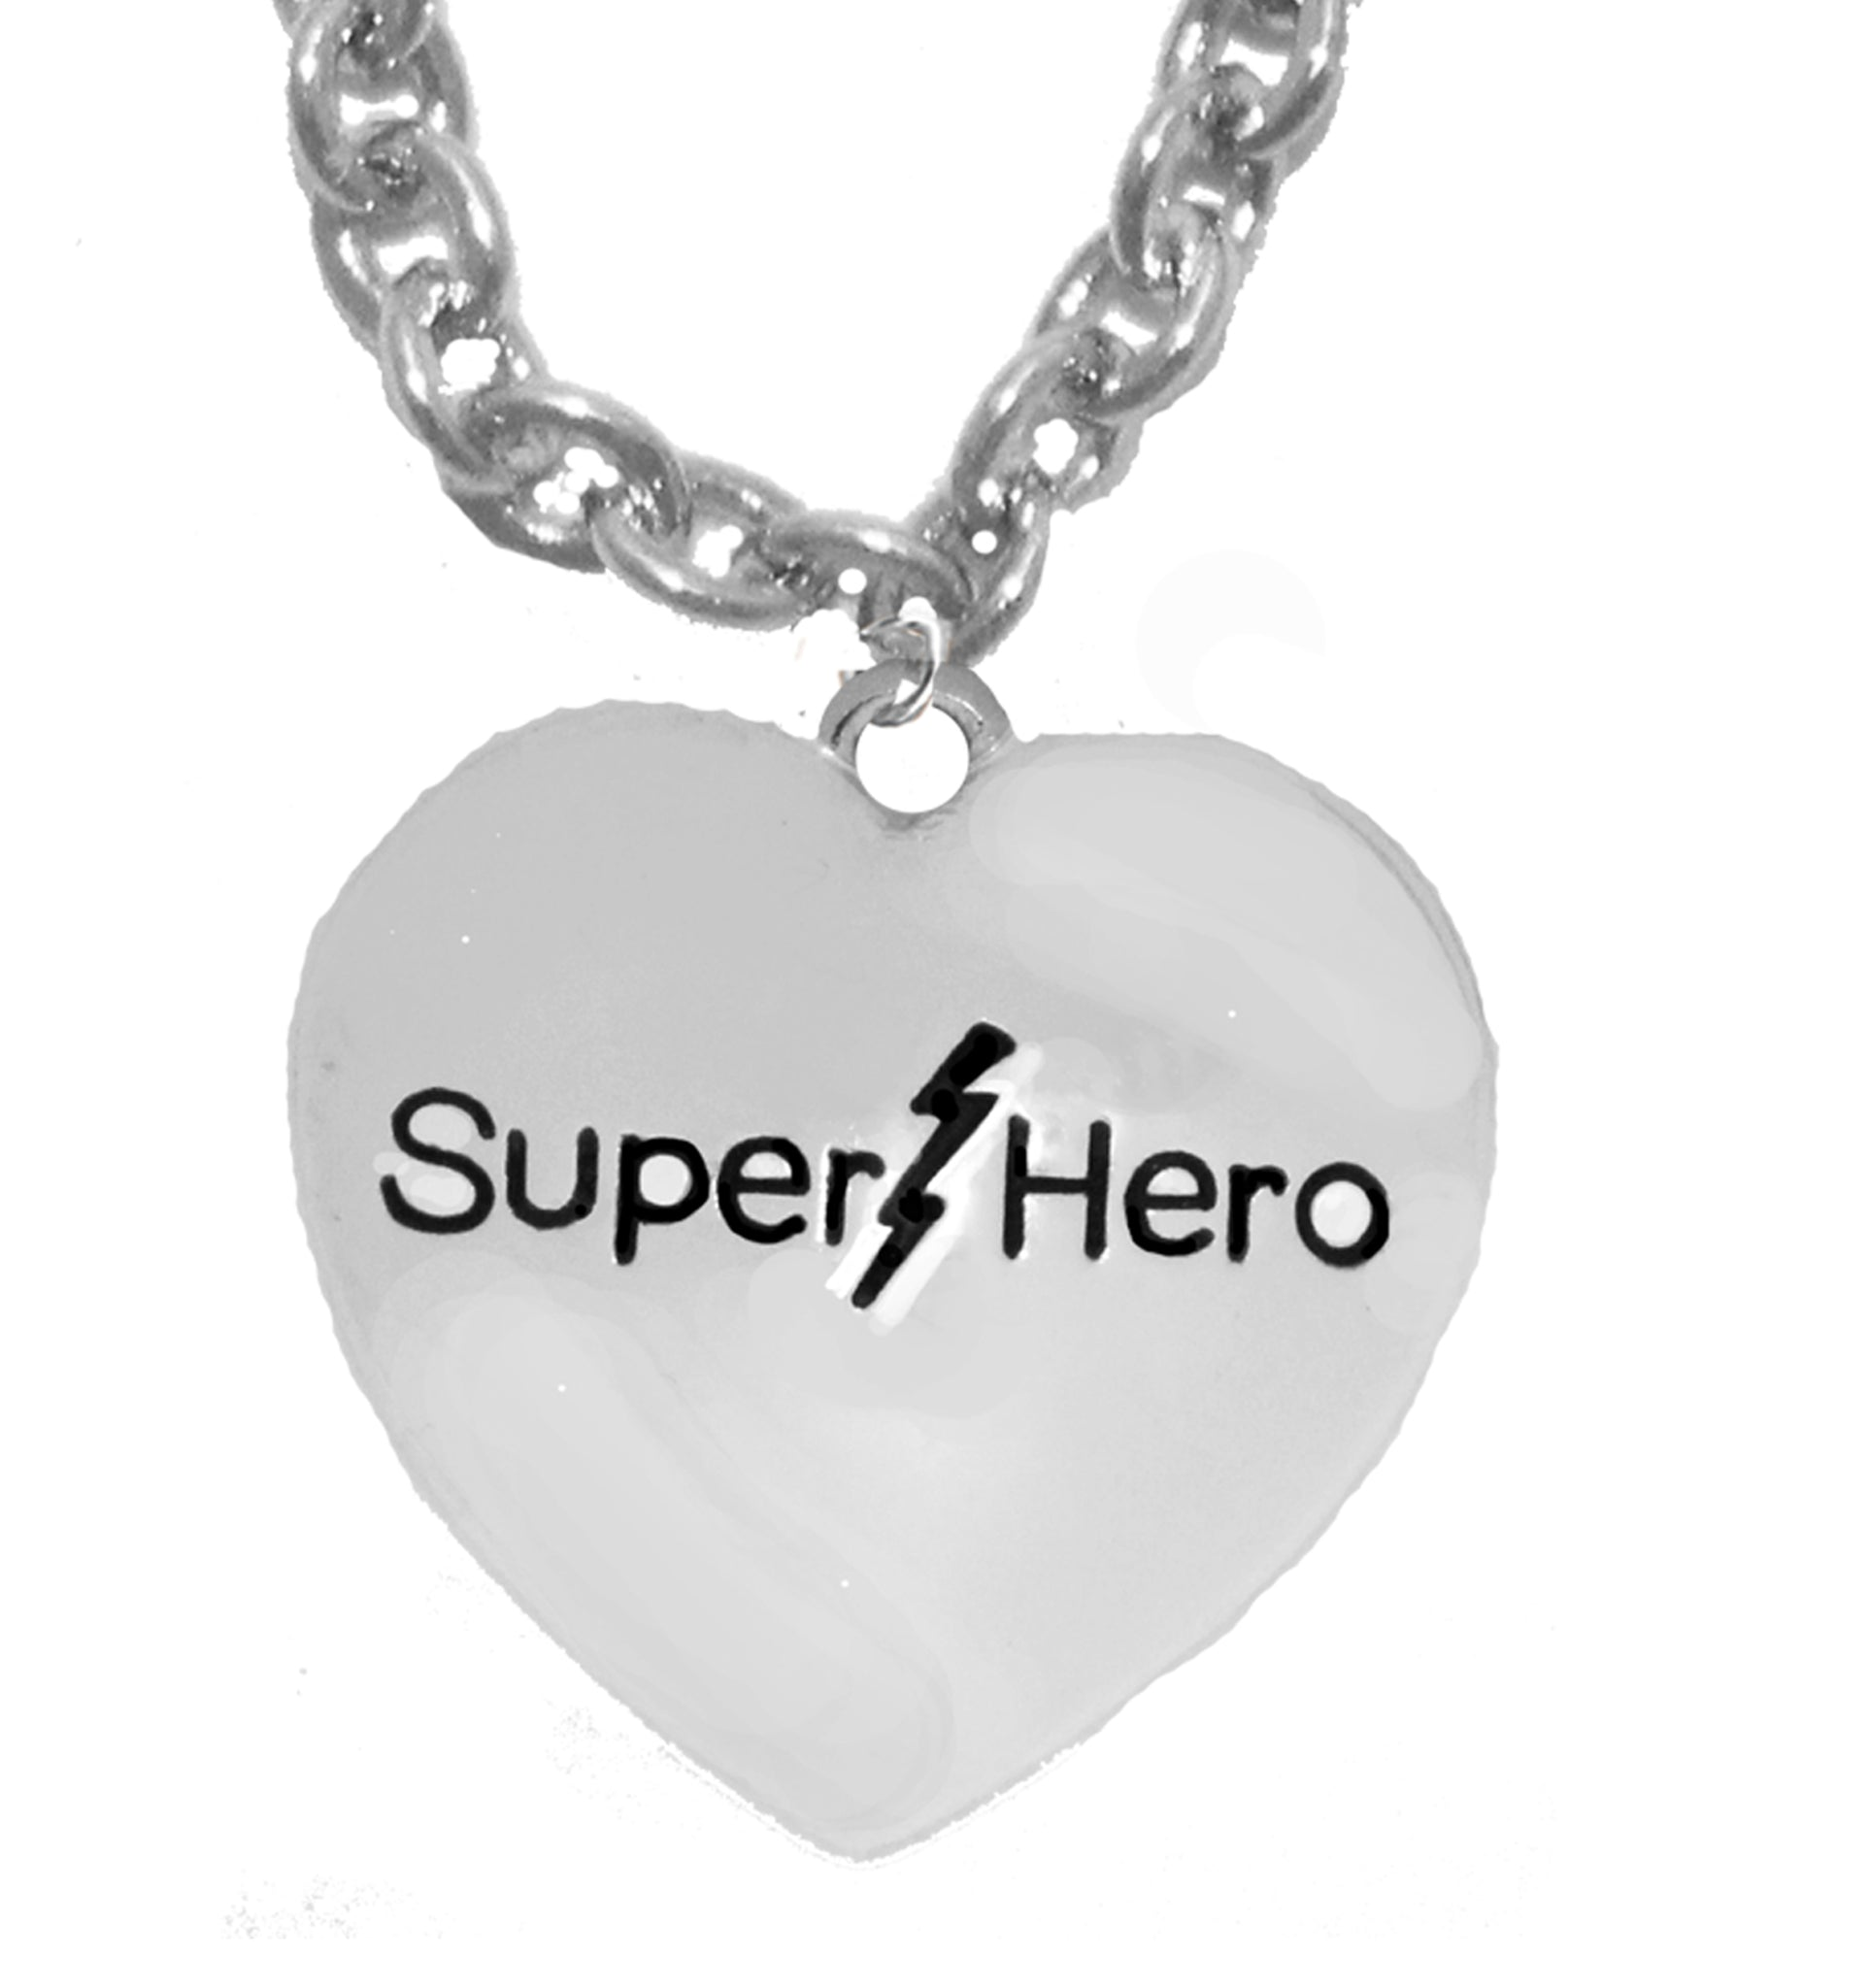 Super Hero Cardinali Jewelry I Love My Policeman Hypoallergenic Safe-No Nickel He is A Adjustable Necklace Lead,or Cadmimum